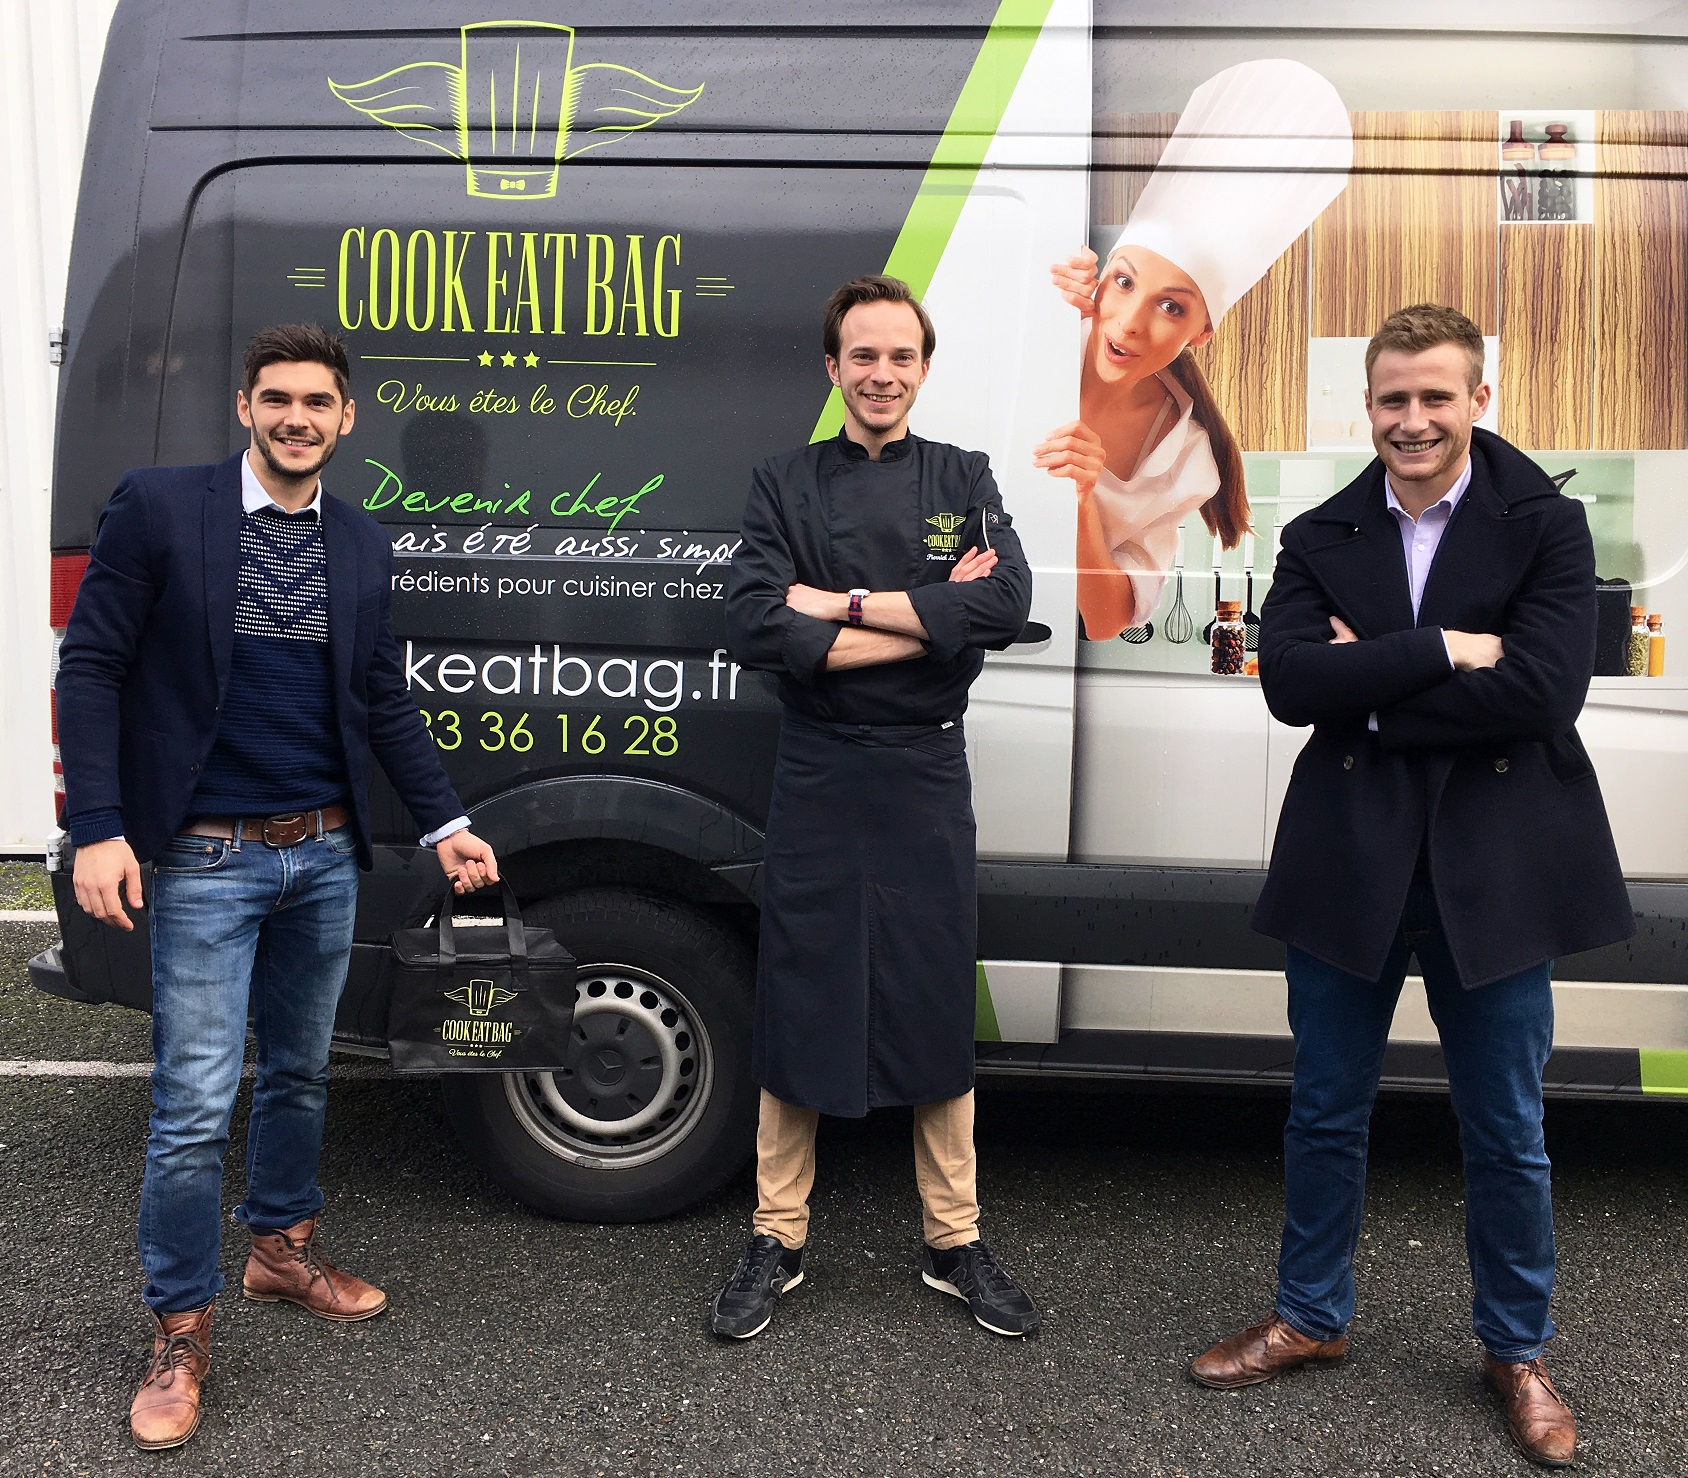 camion_cook_eat_bag_bordeaux_chef_domicile